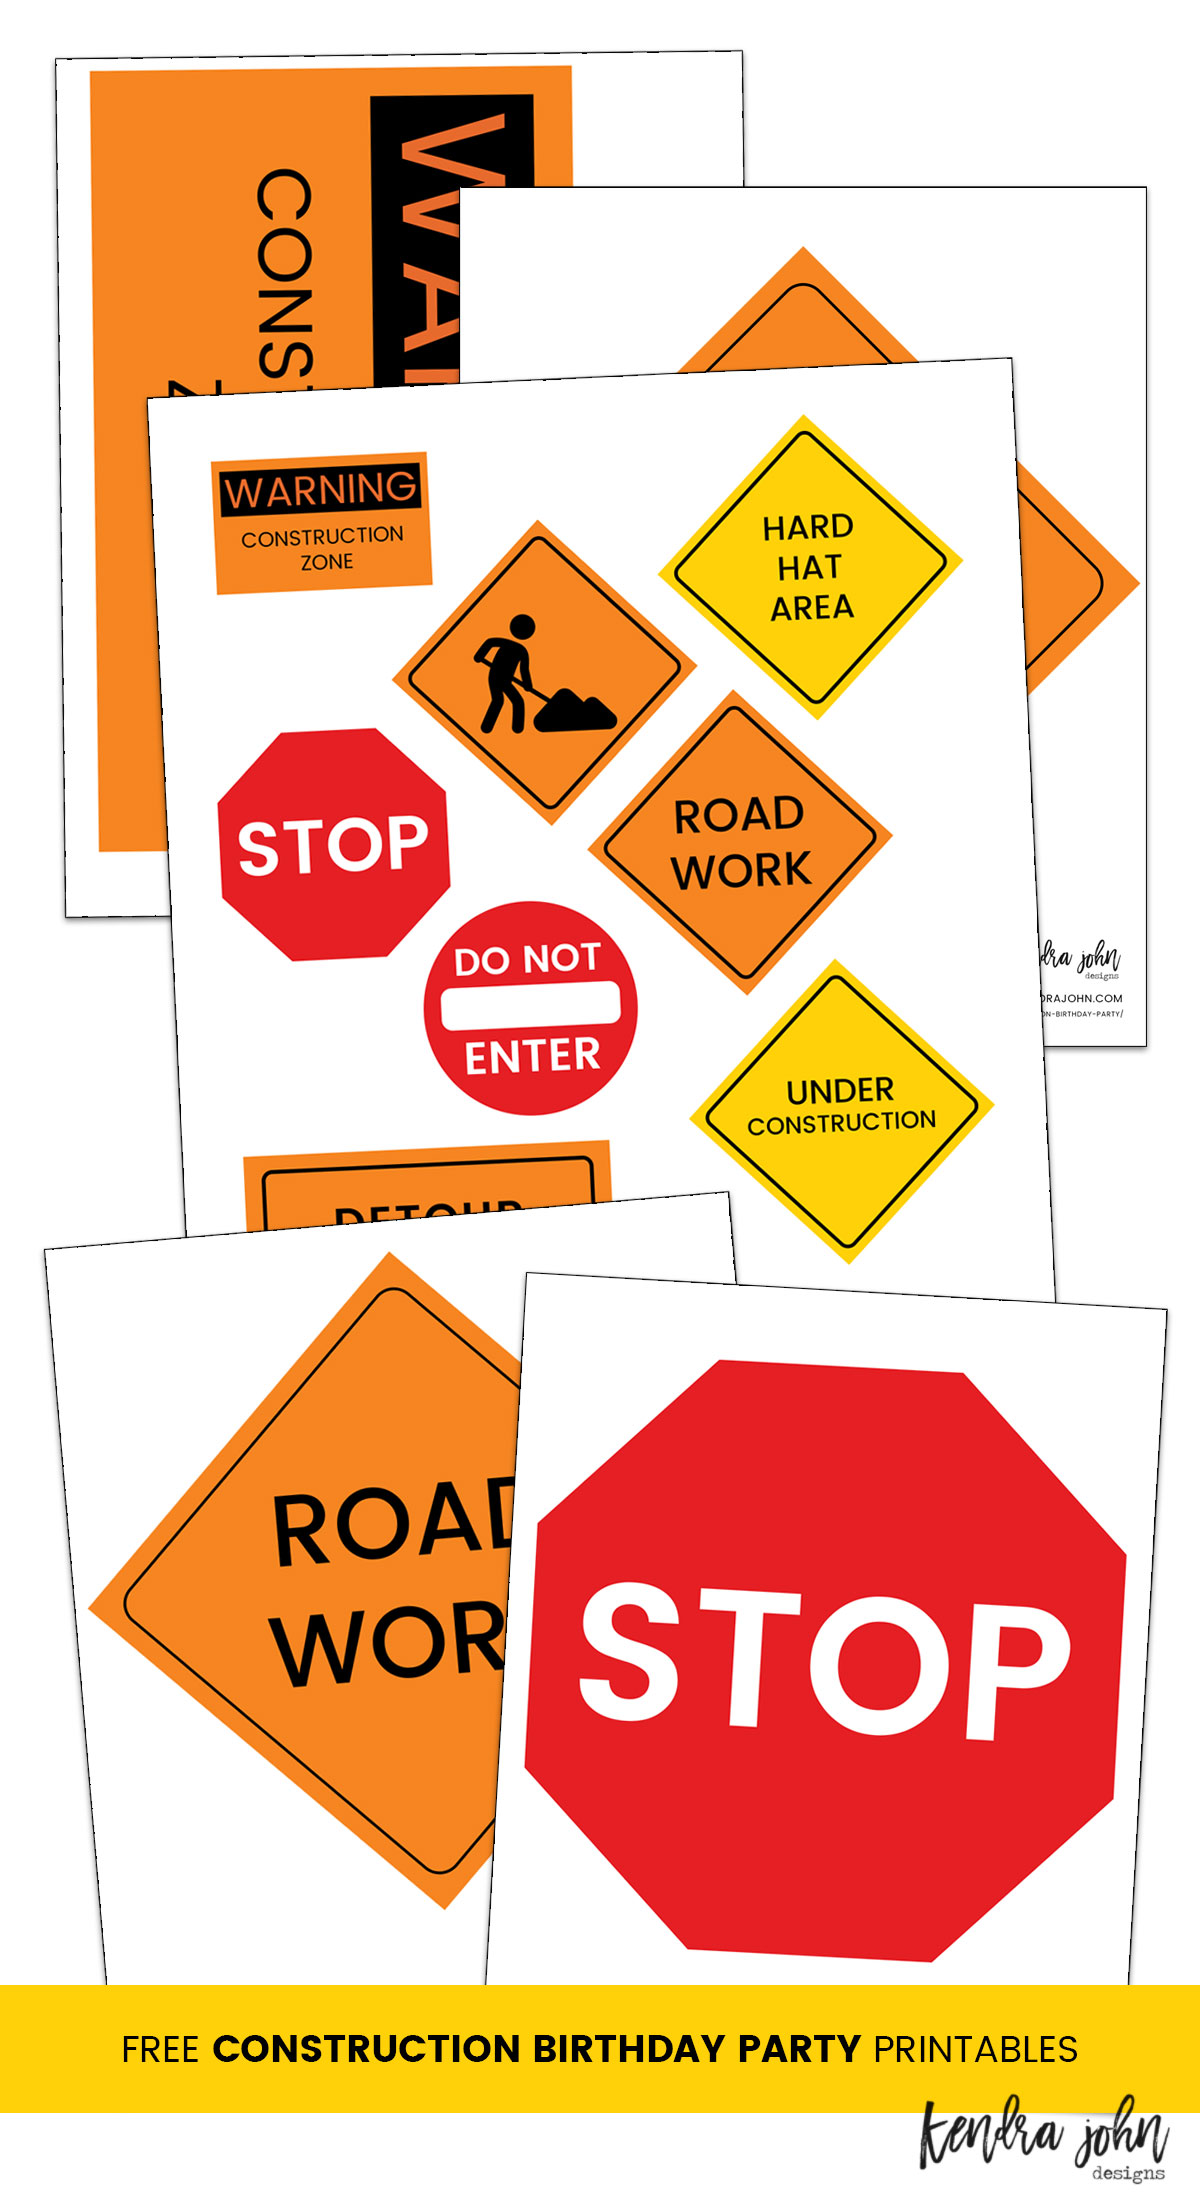 graphic about Printable Construction Signs called Straightforward Structure Birthday Bash Designs furthermore No cost Printables!